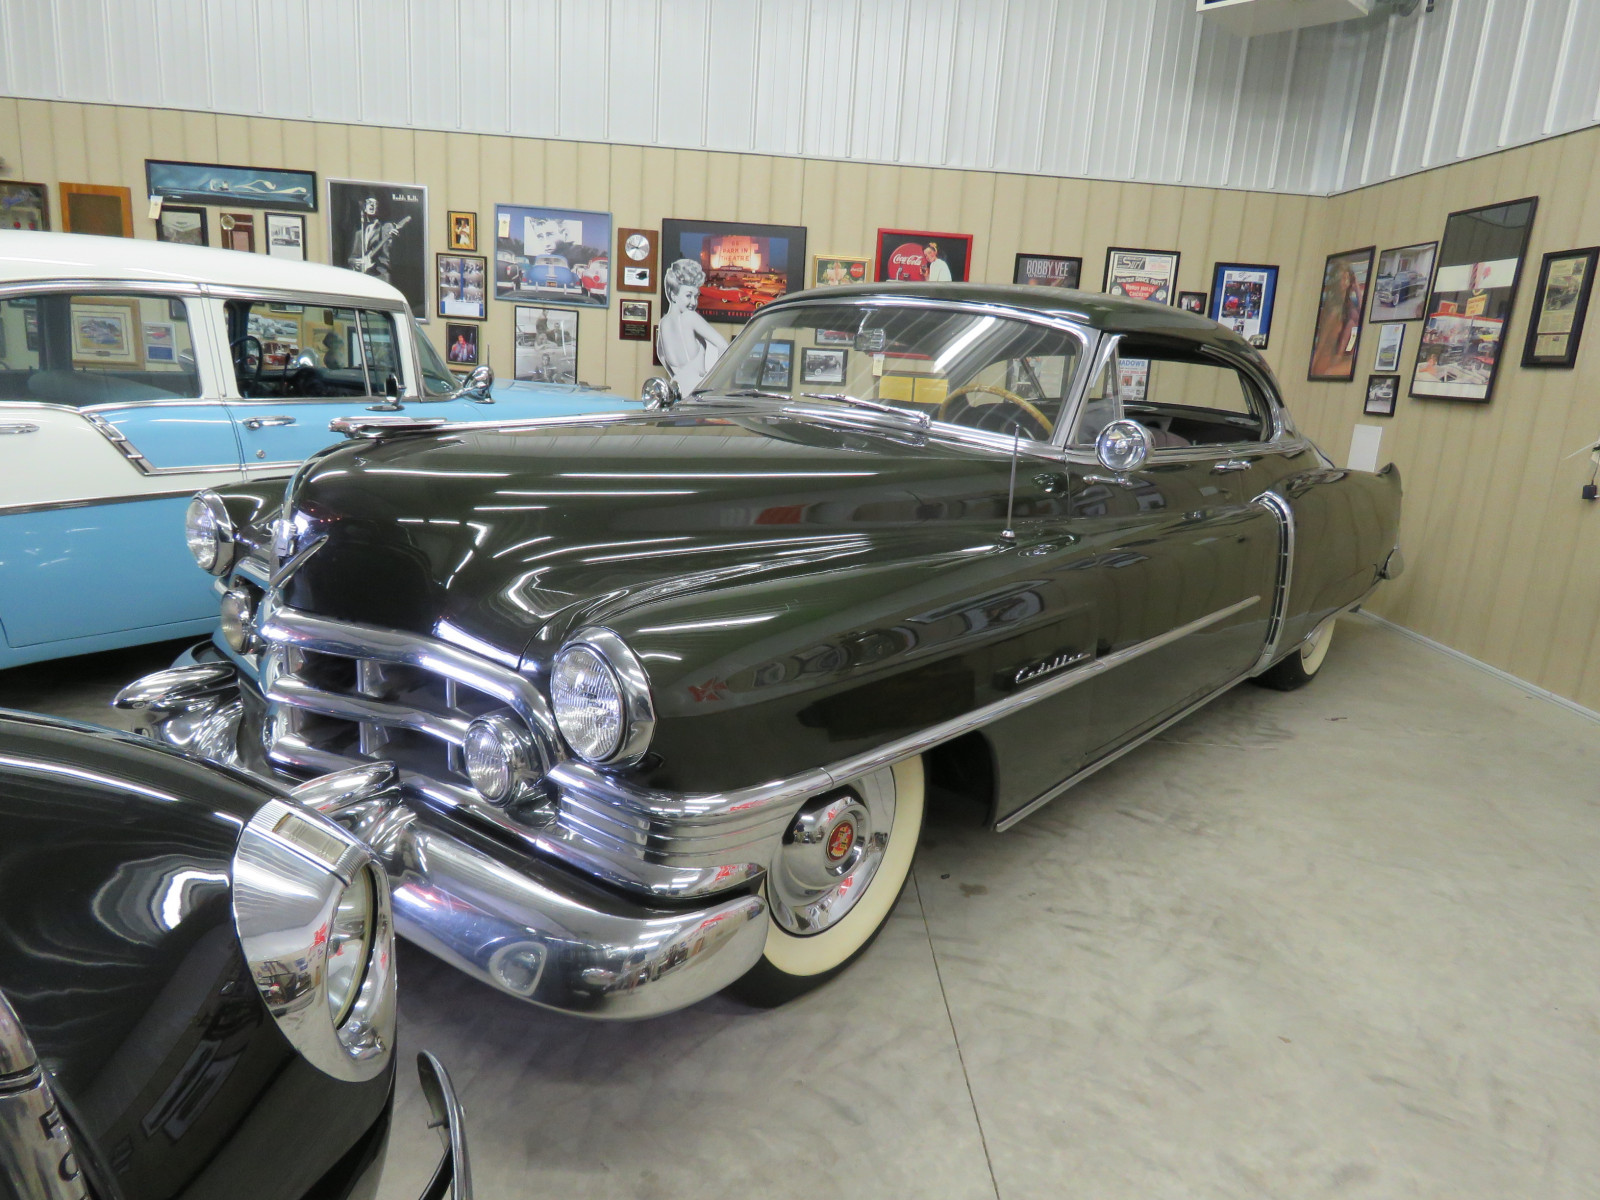 1950 Cadillac Coupe Deville Series 62 Coupe - Image 3